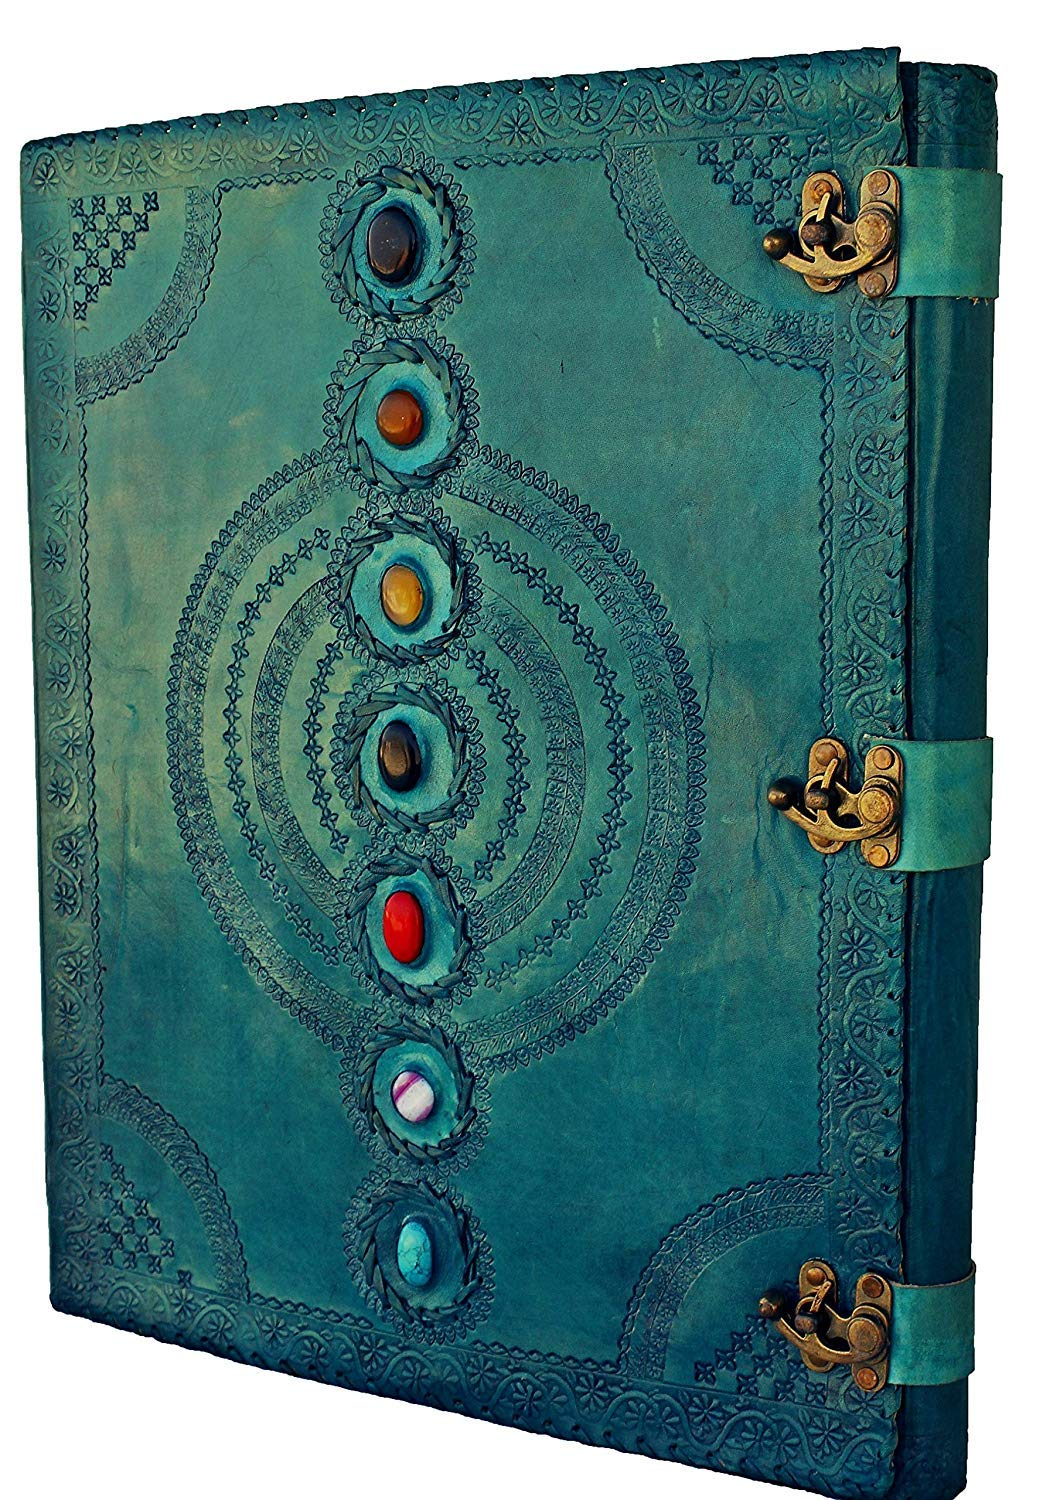 SKYLAND Leather Journal Book Seven Chakra Medieval Stone Embossed Handmade Book of Shadows Notebook Office Diary College Book Poetry Book Sketch Book 13 x 18 Inches